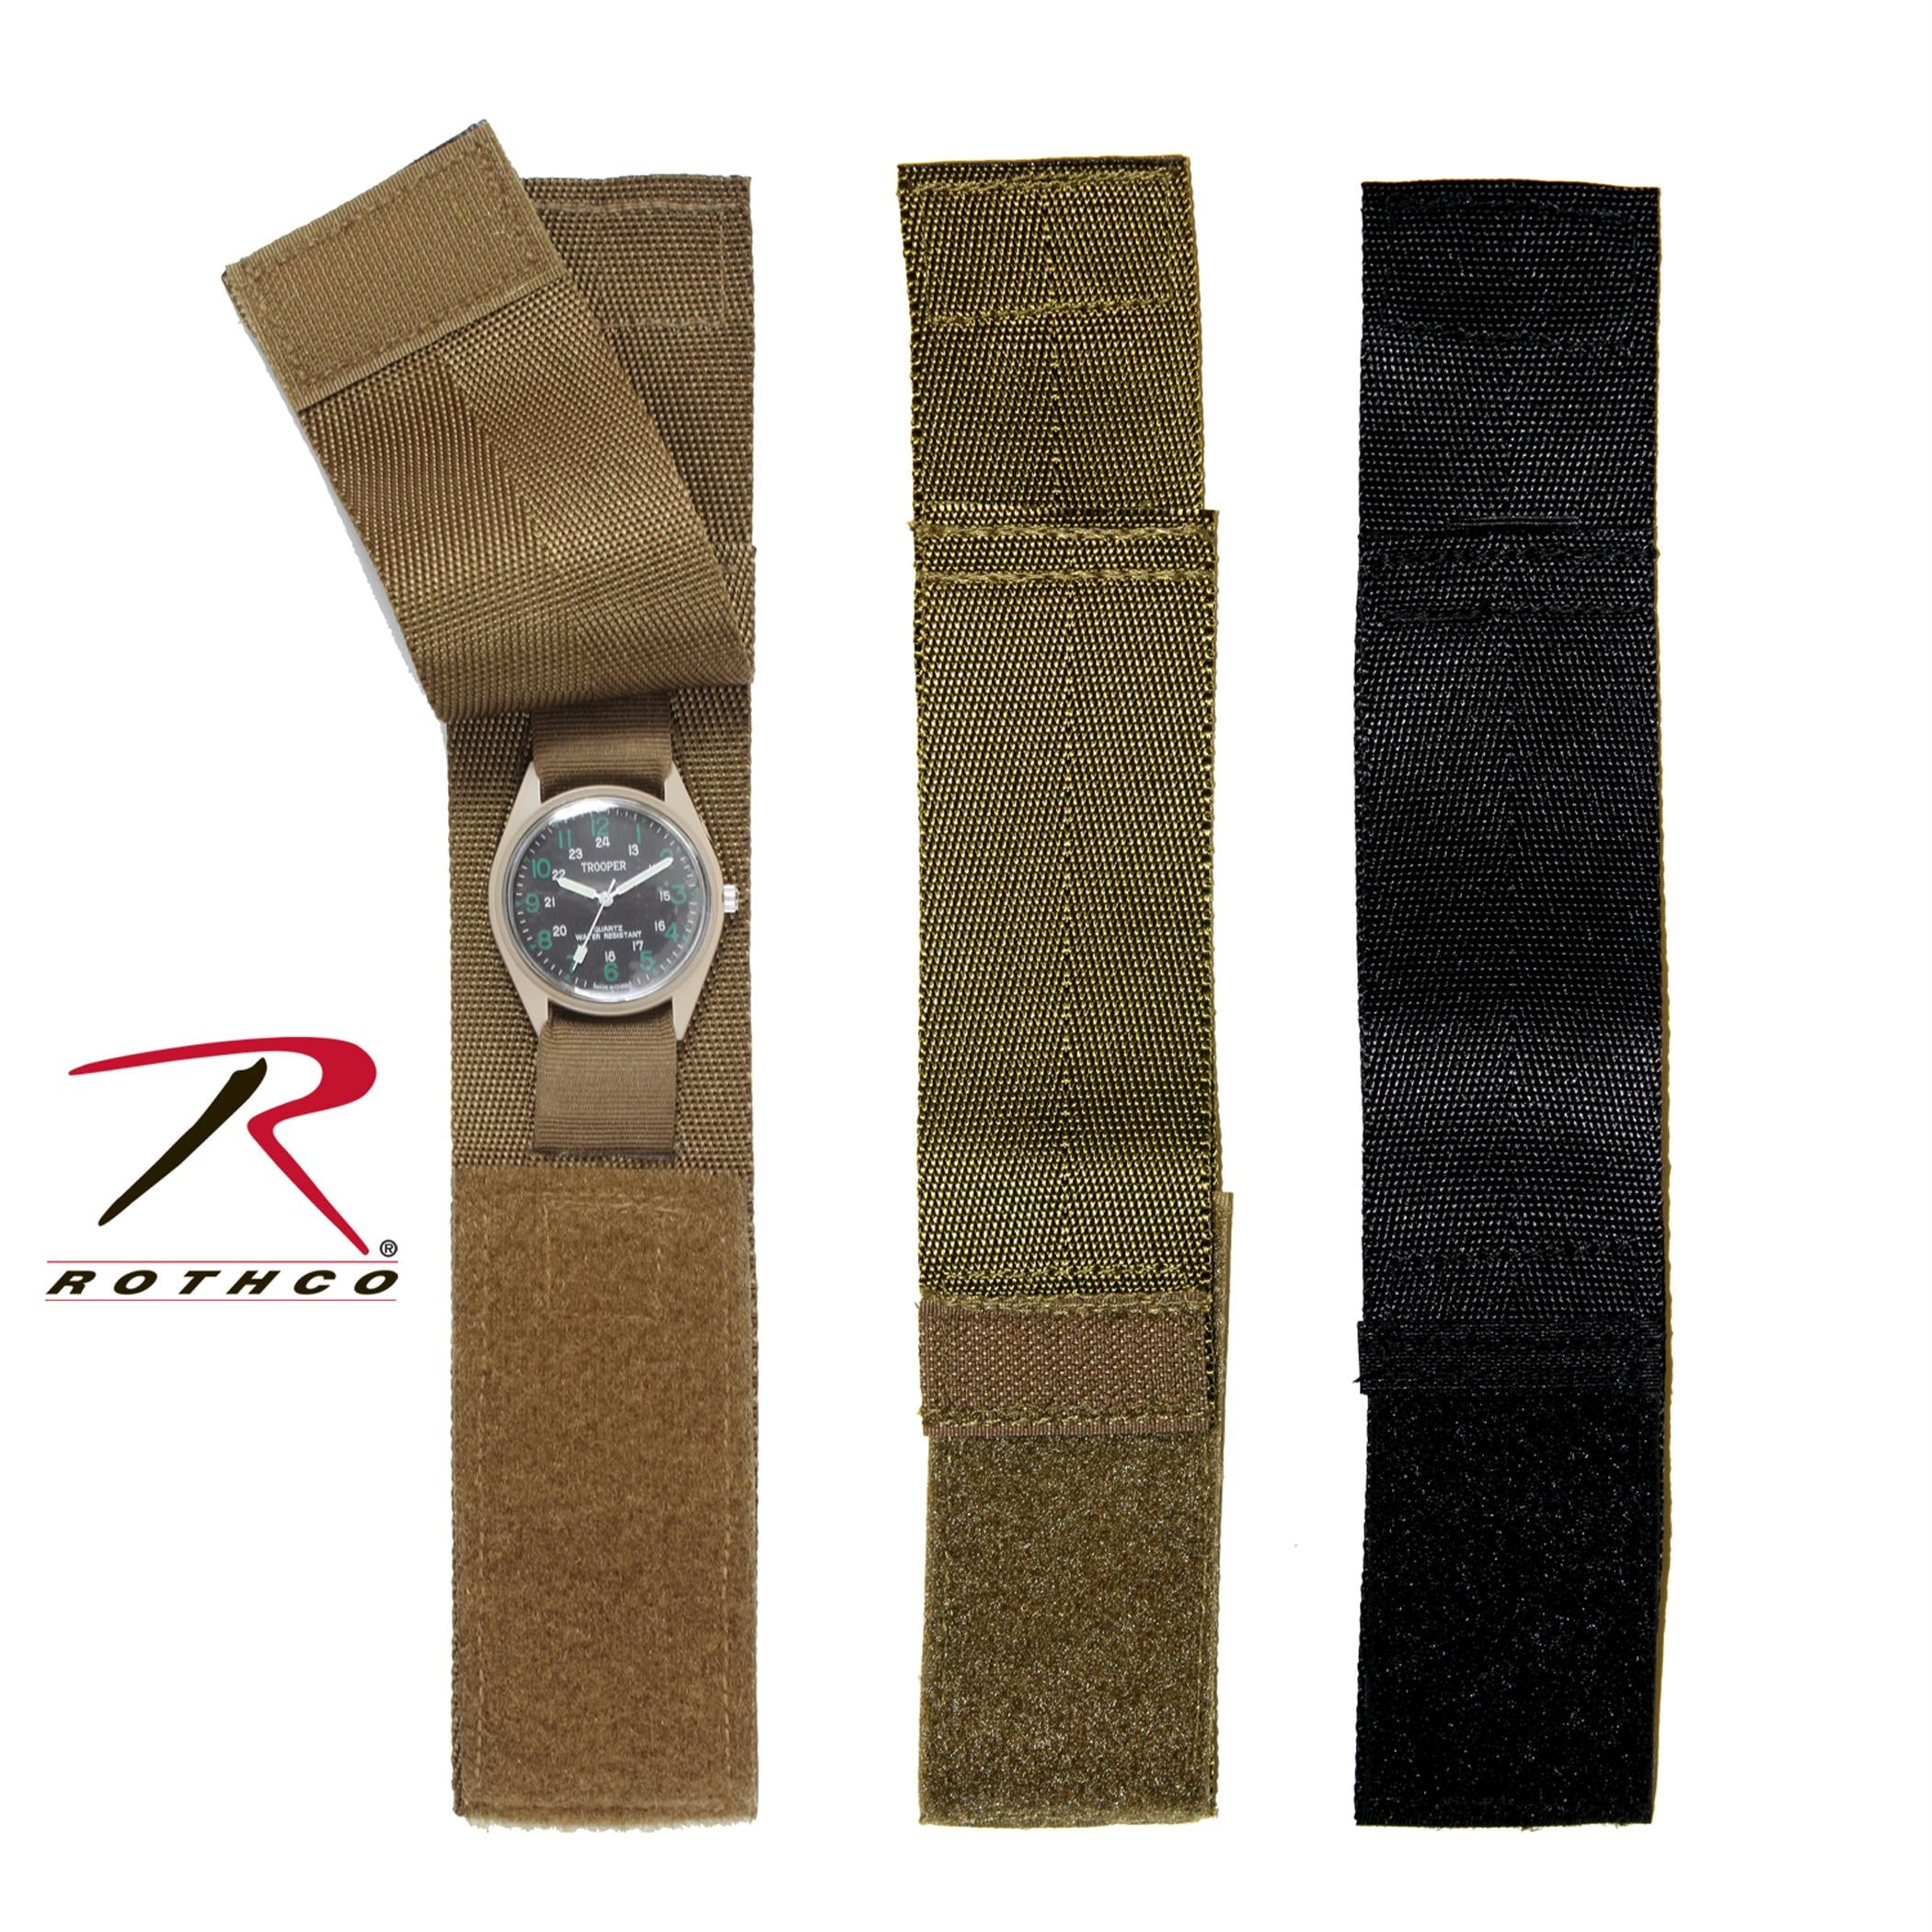 Rothco Commando Watchband - Black